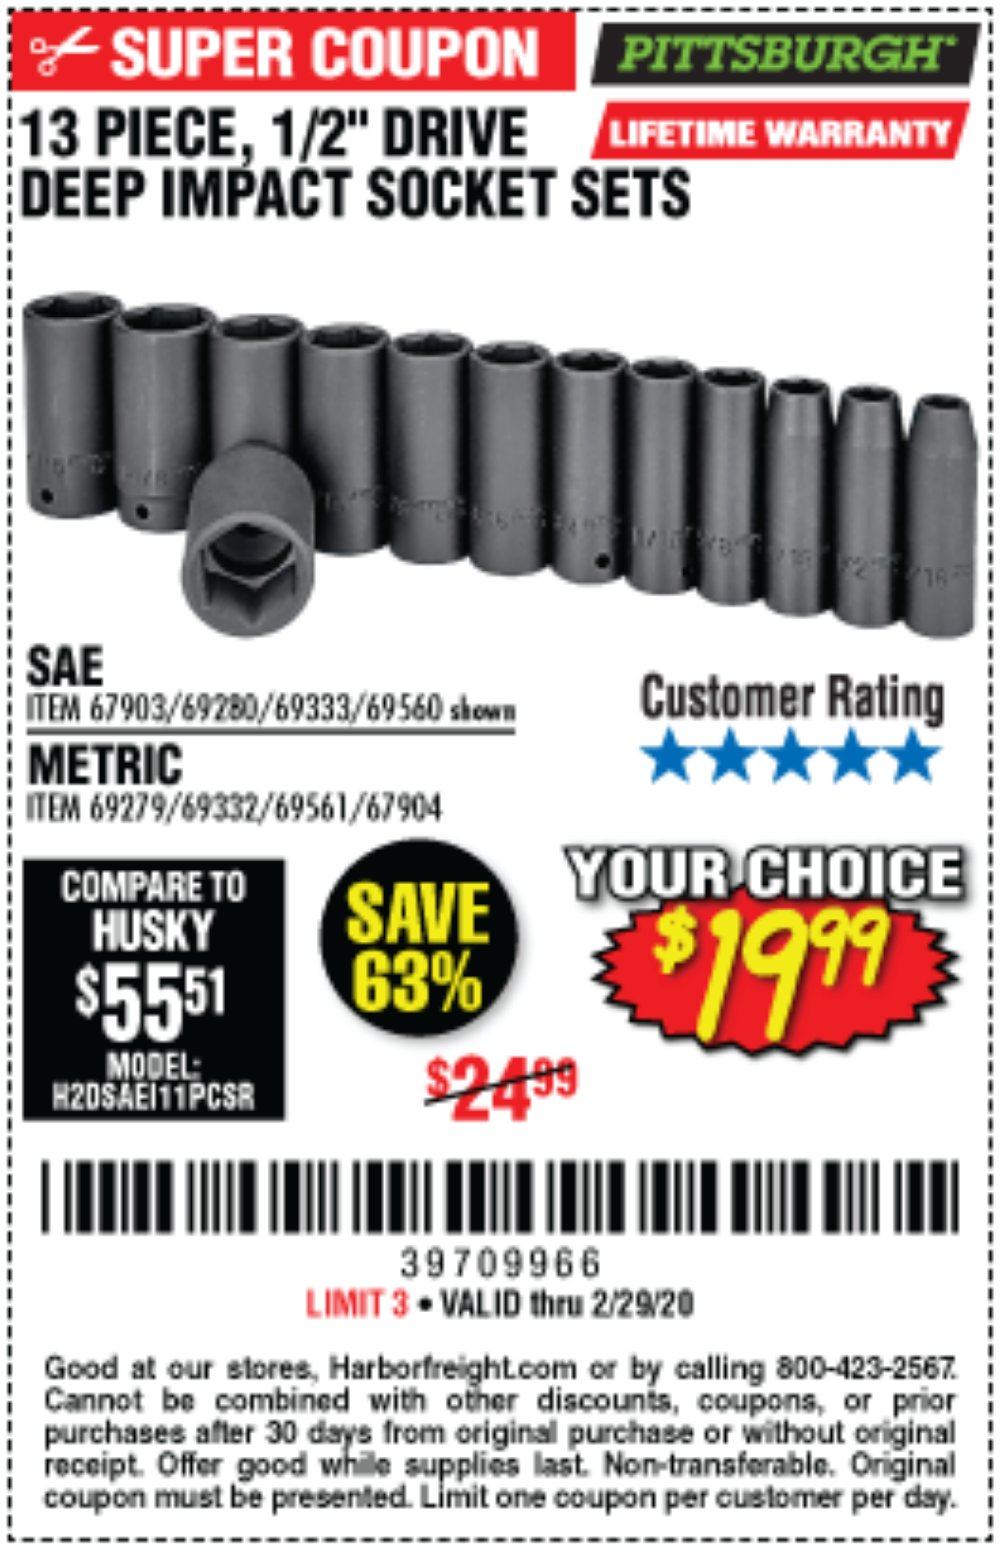 Harbor Freight Coupon, HF Coupons - 13 Piece 1/2